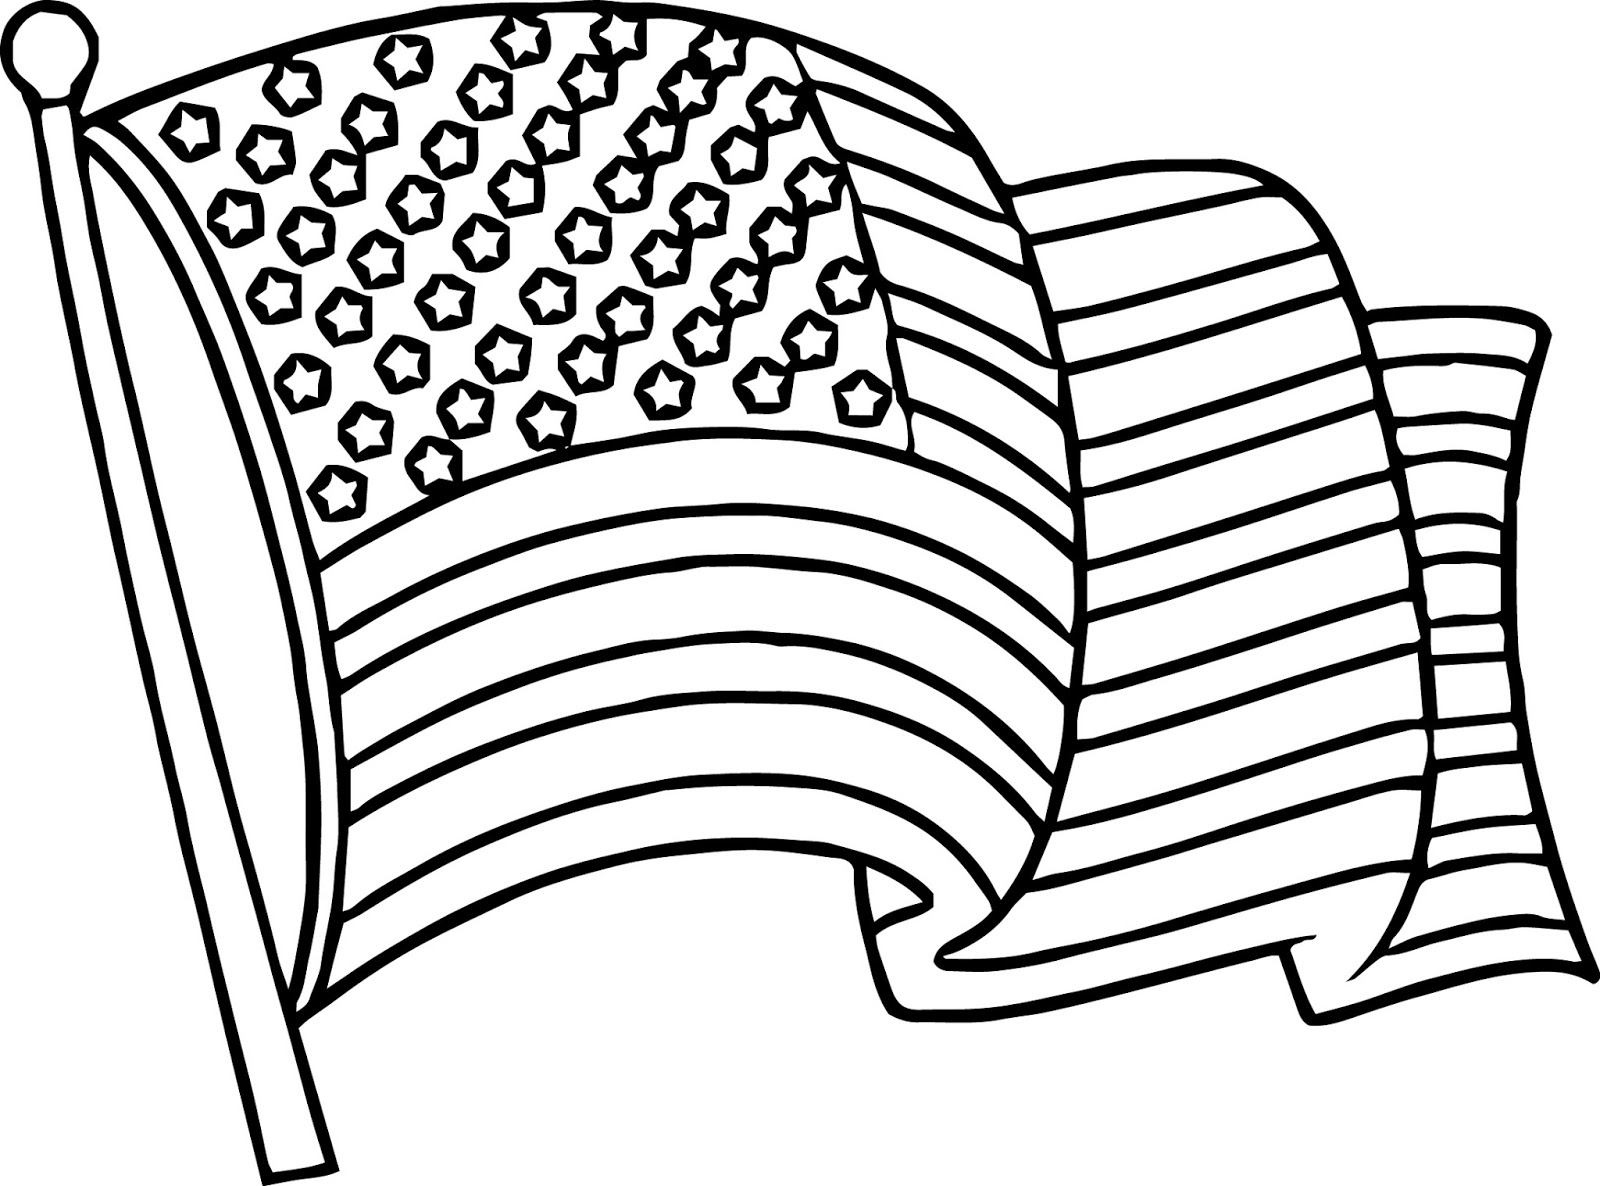 American Flag Coloring Pages Best Coloring Pages For Kids Flag Color Page